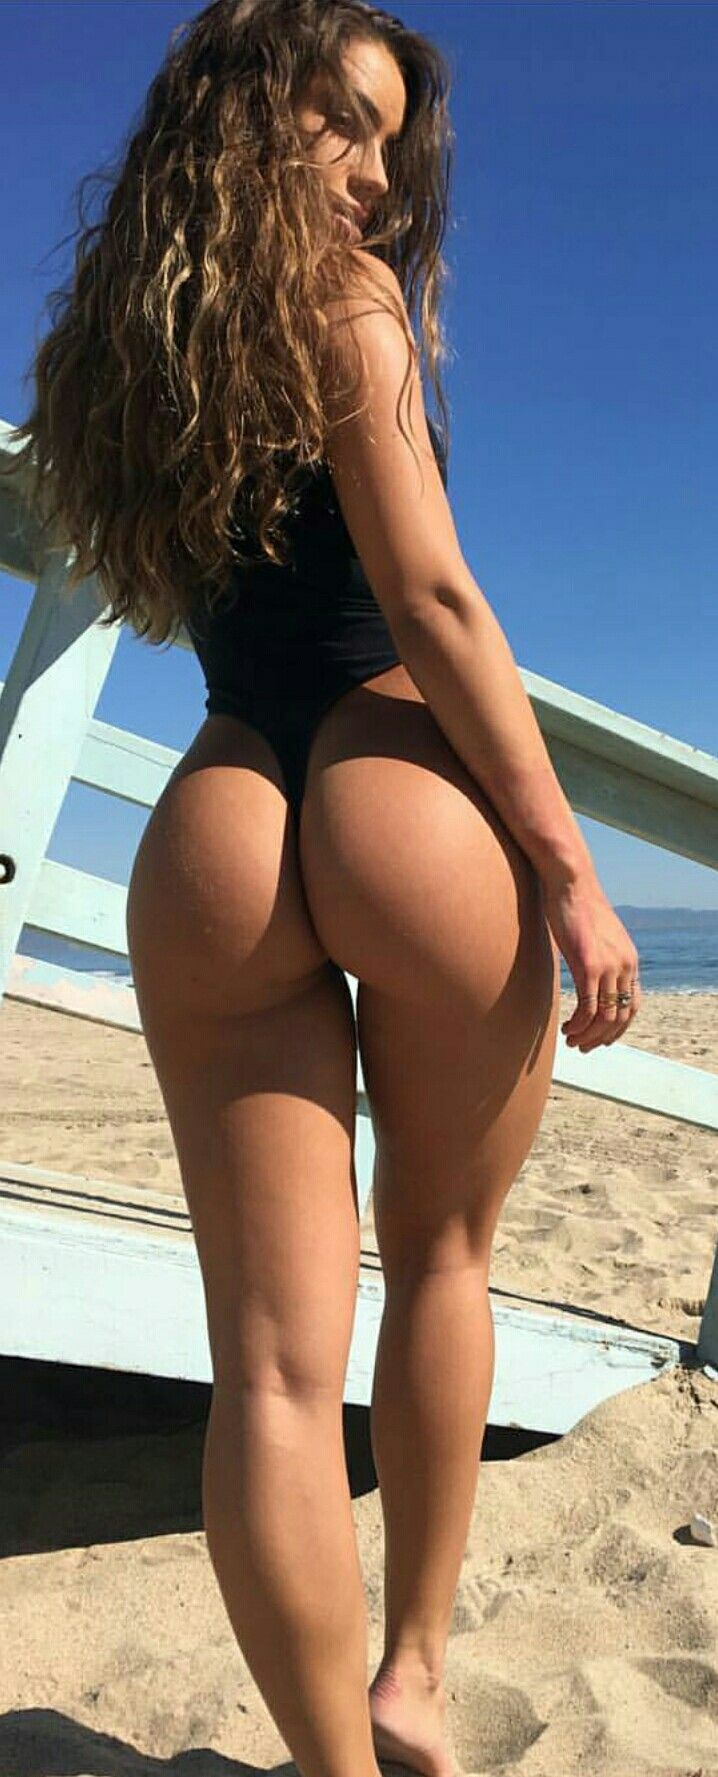 pintony gargano on hello to you | pinterest | latina, nice asses